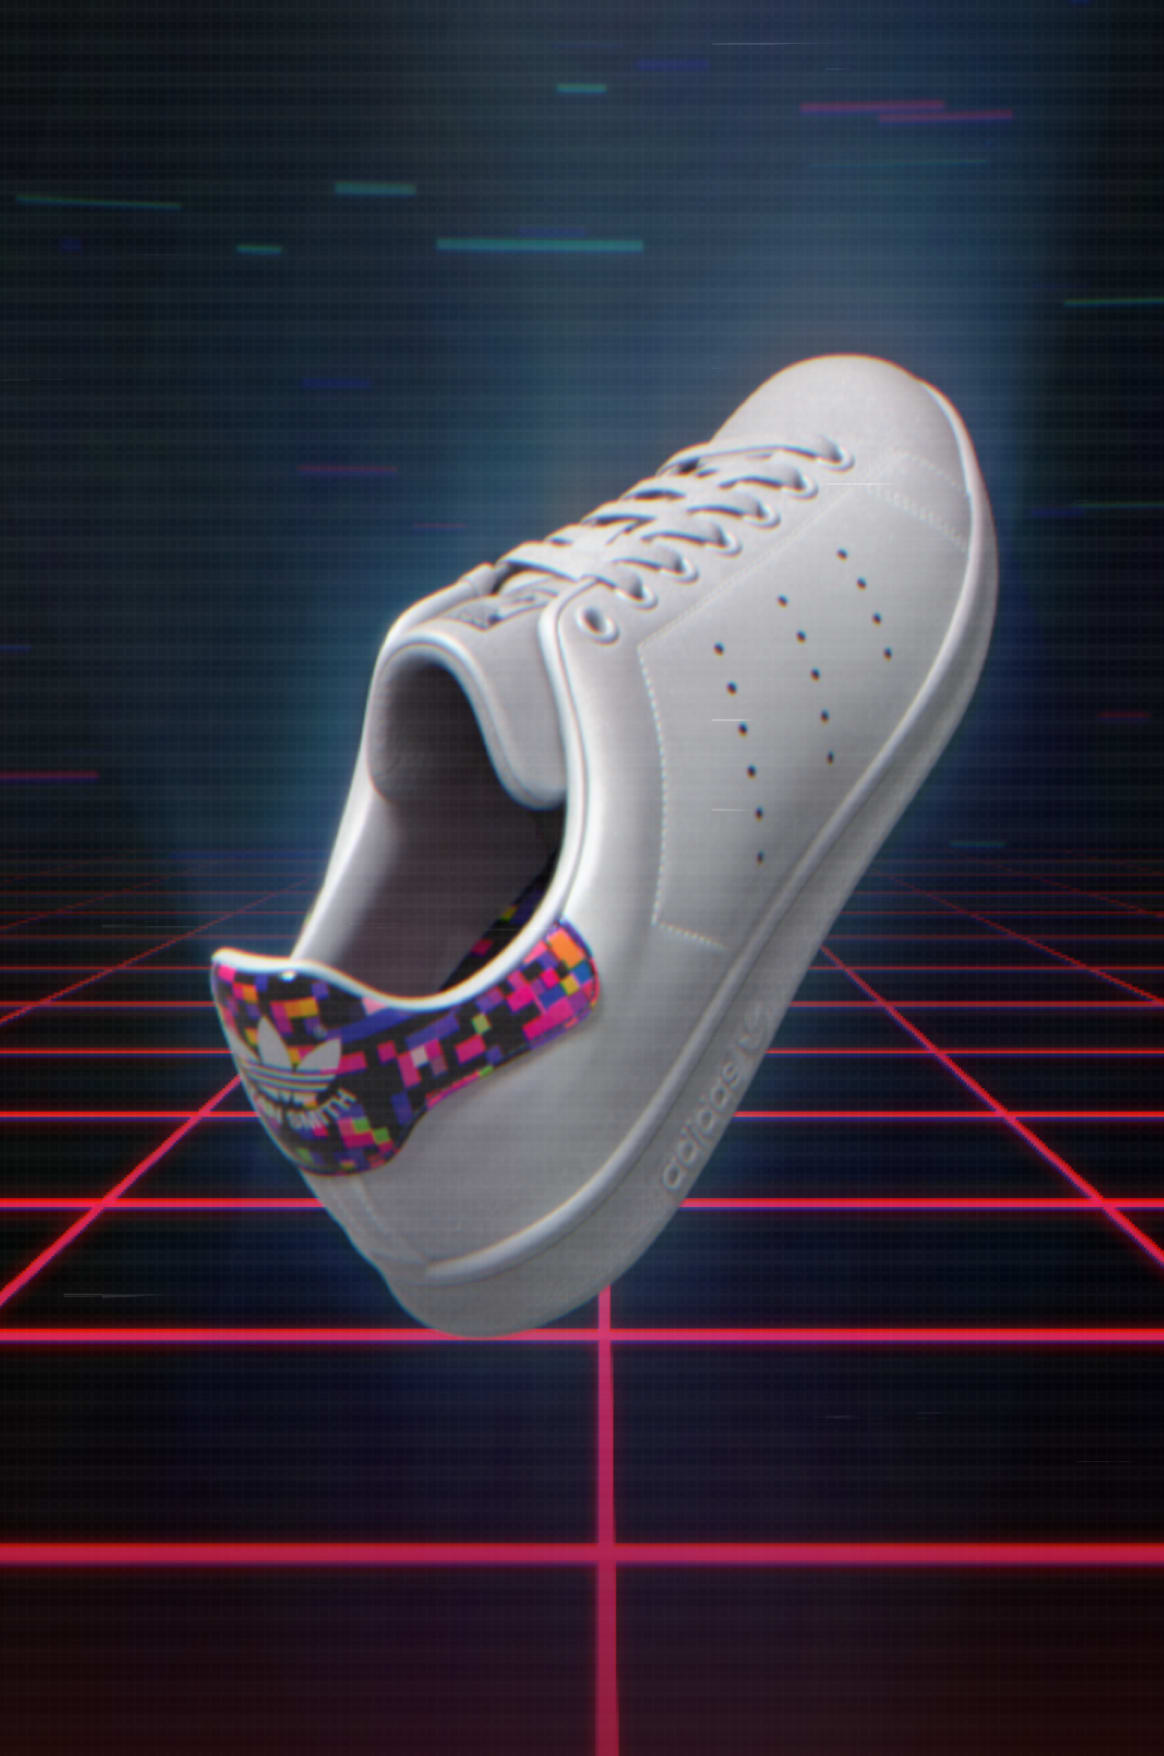 adidas Stan Smith in video-game setting.